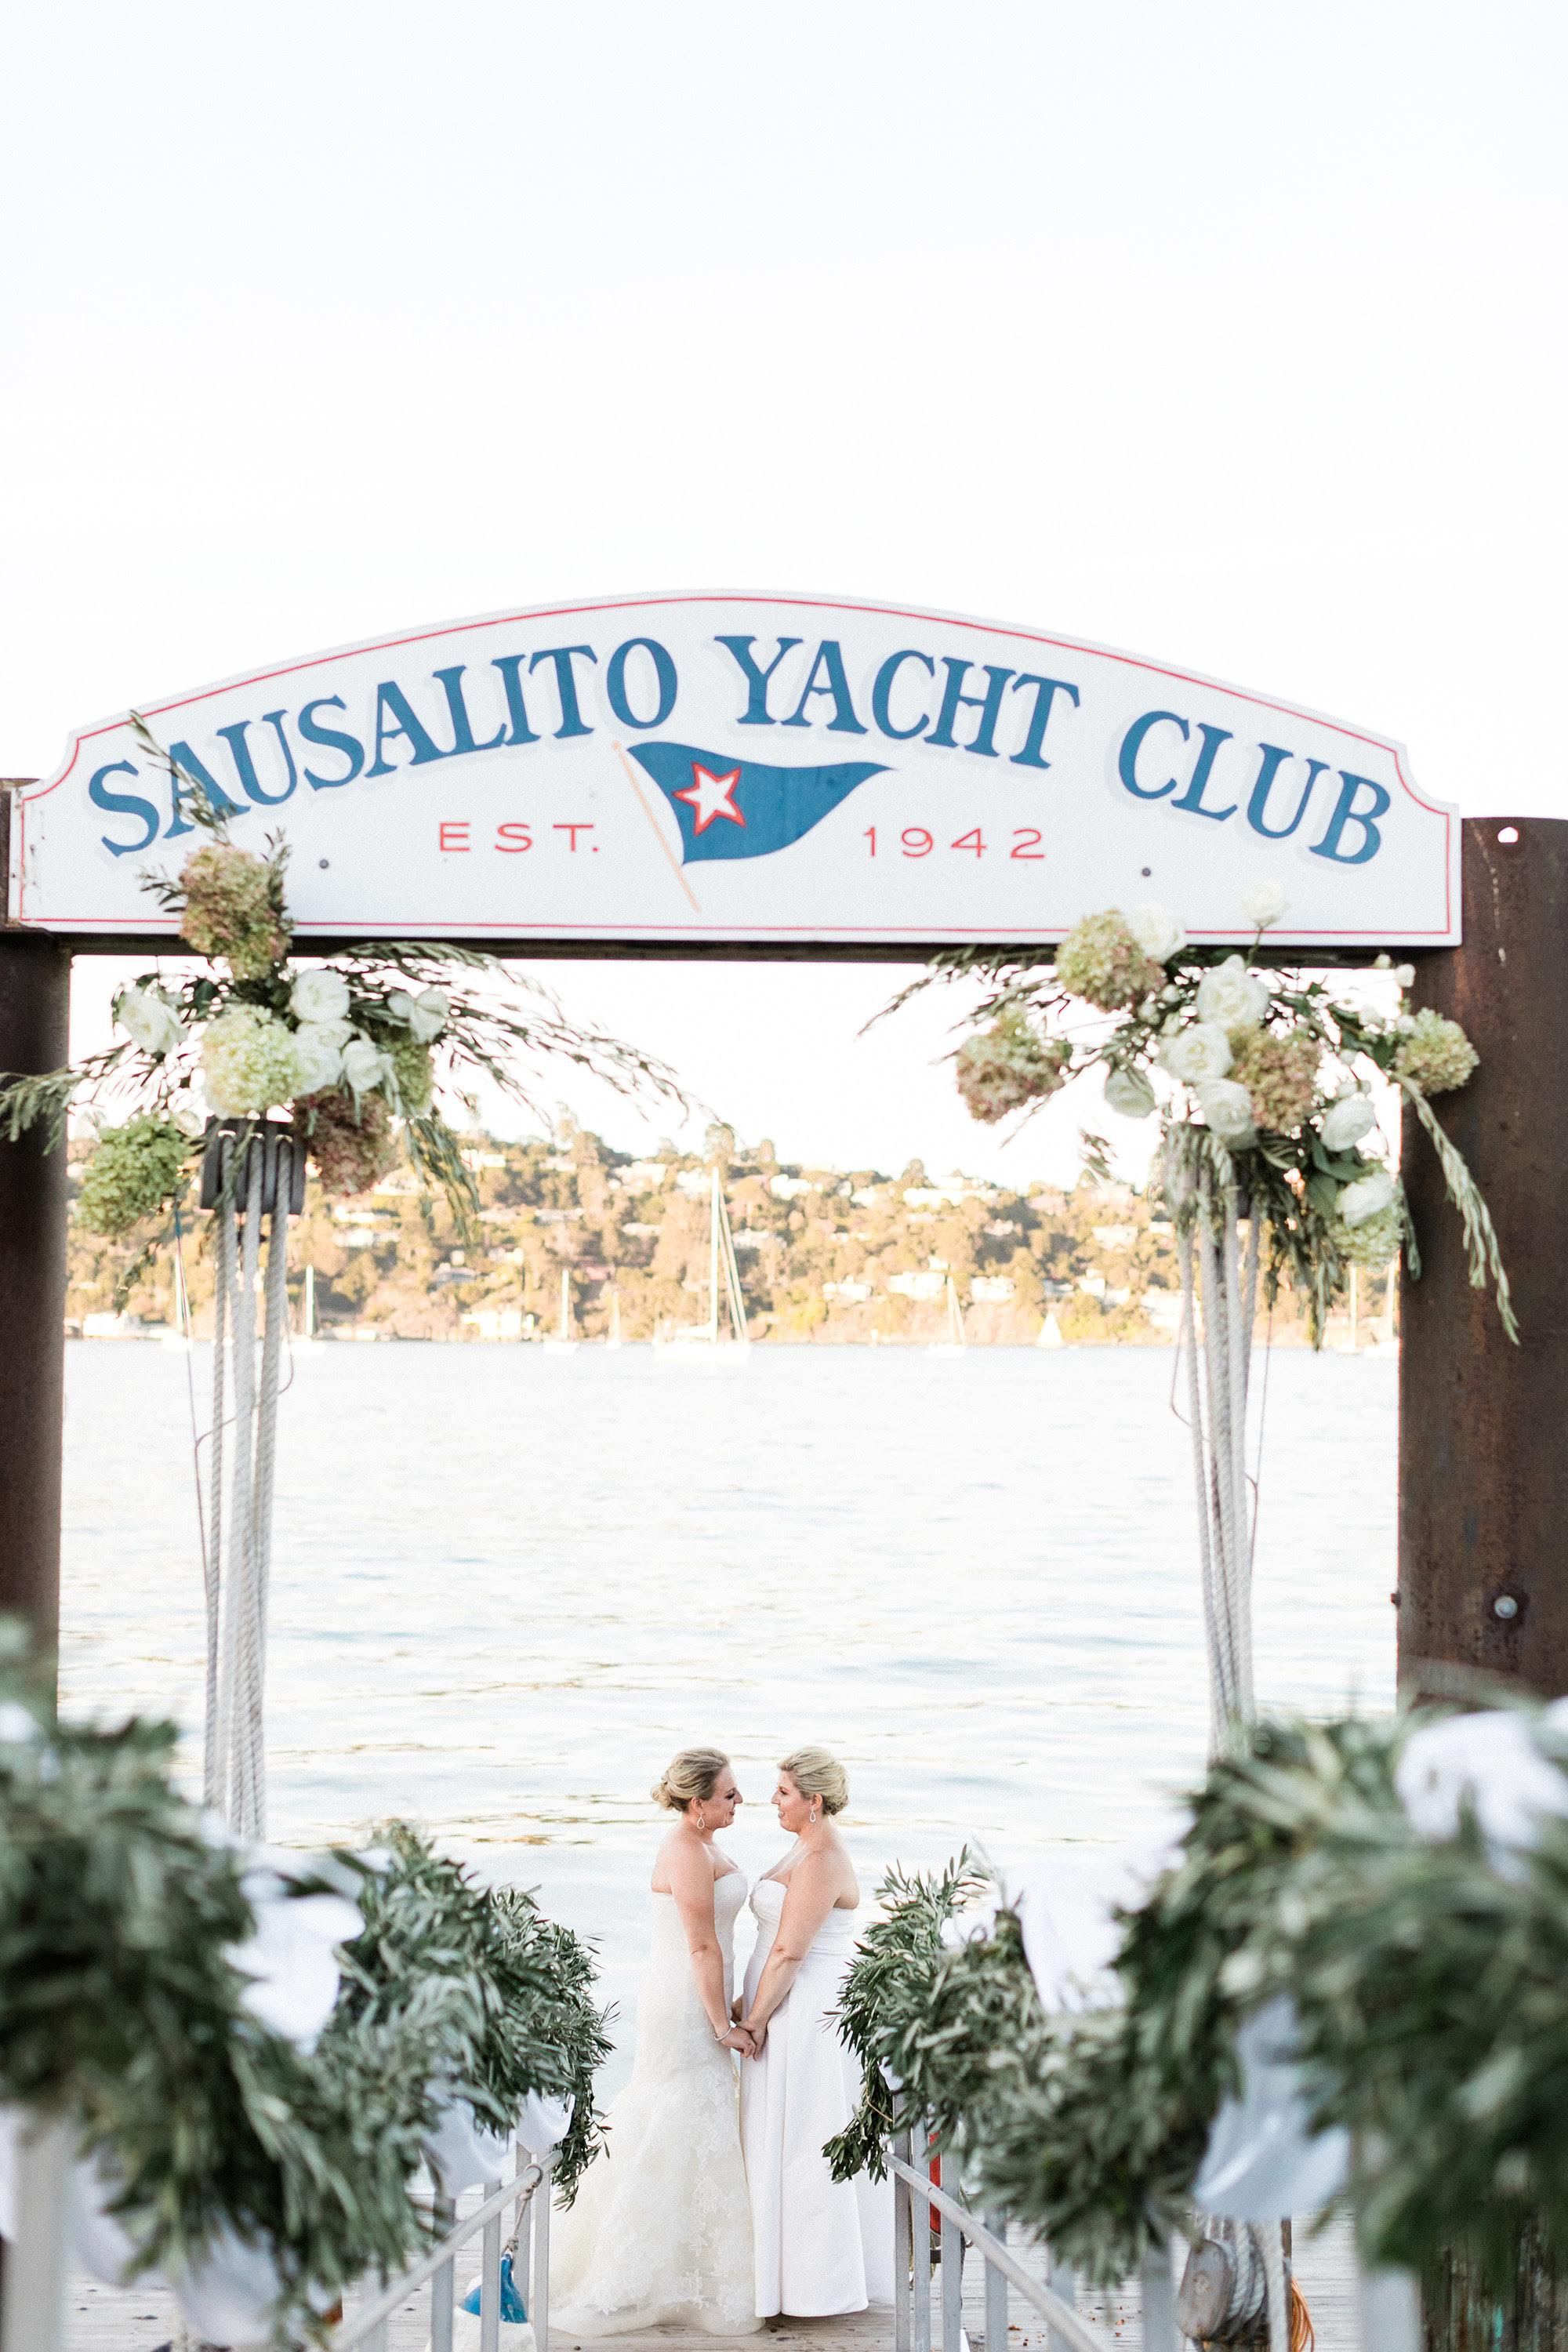 092218_AK_Sausalito-Yacht-Club-Wedding_Buena-Lane-Photography_351.jpg